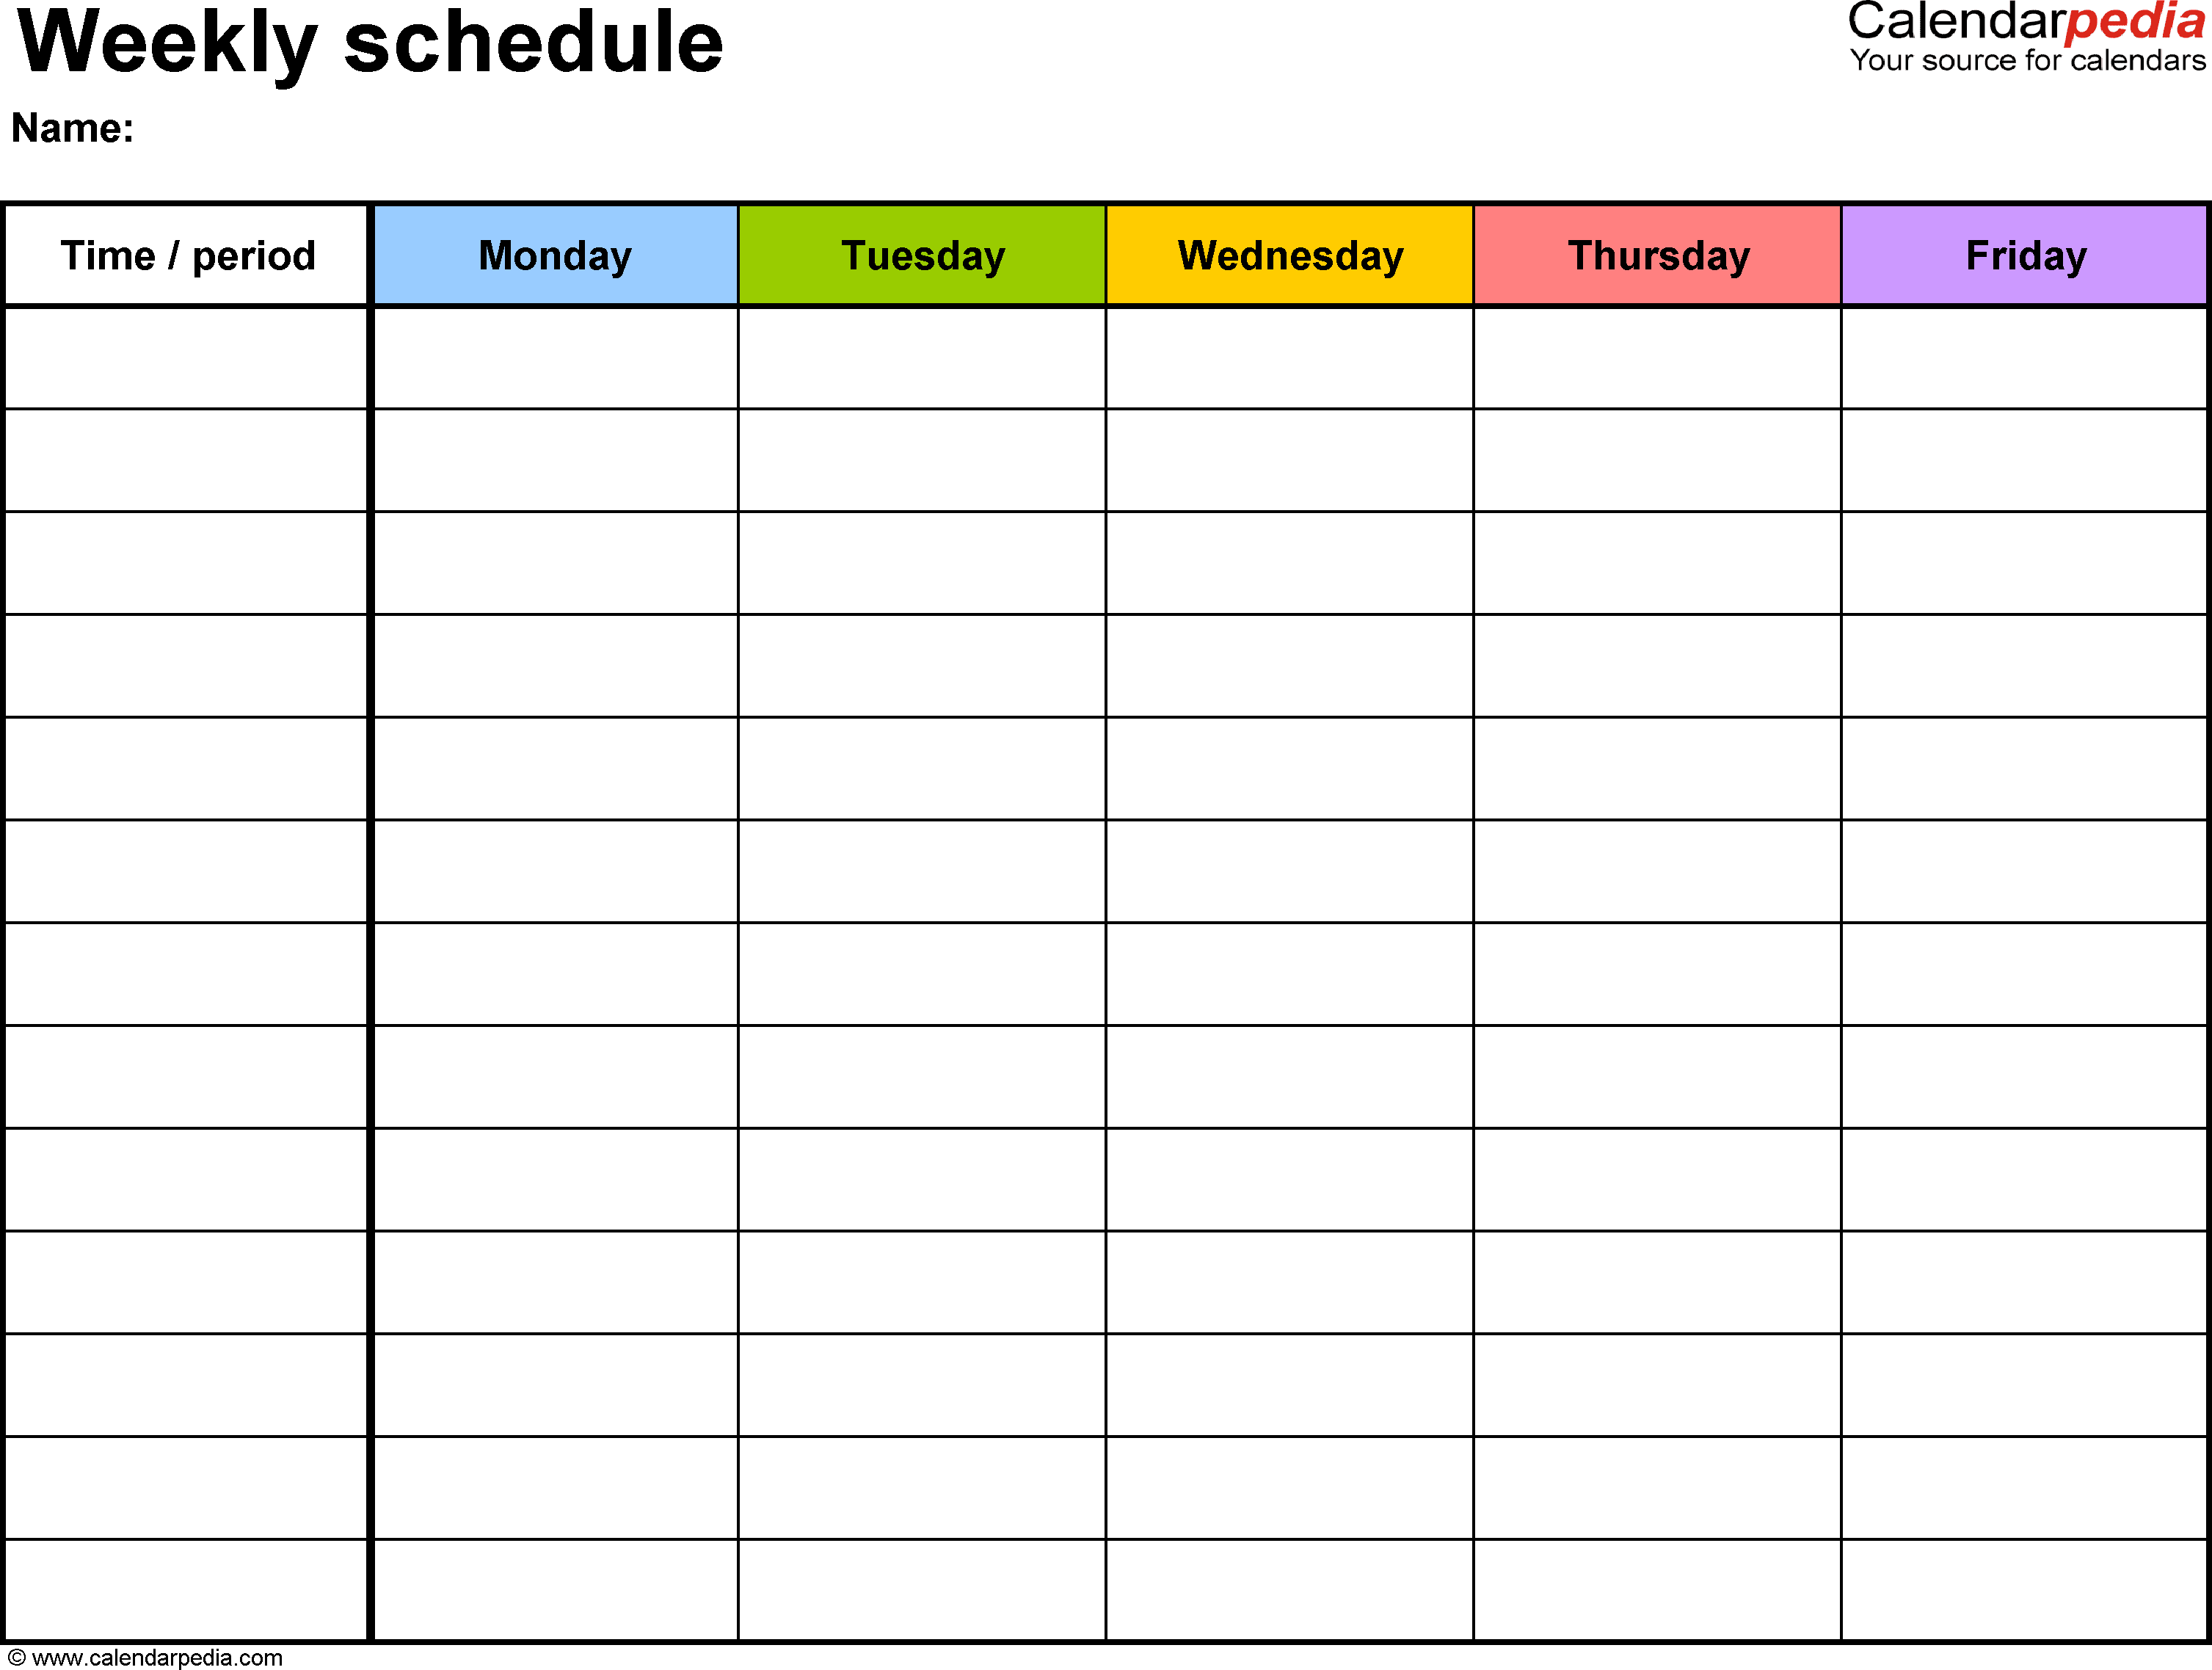 Slobbery image in weekly schedule printable